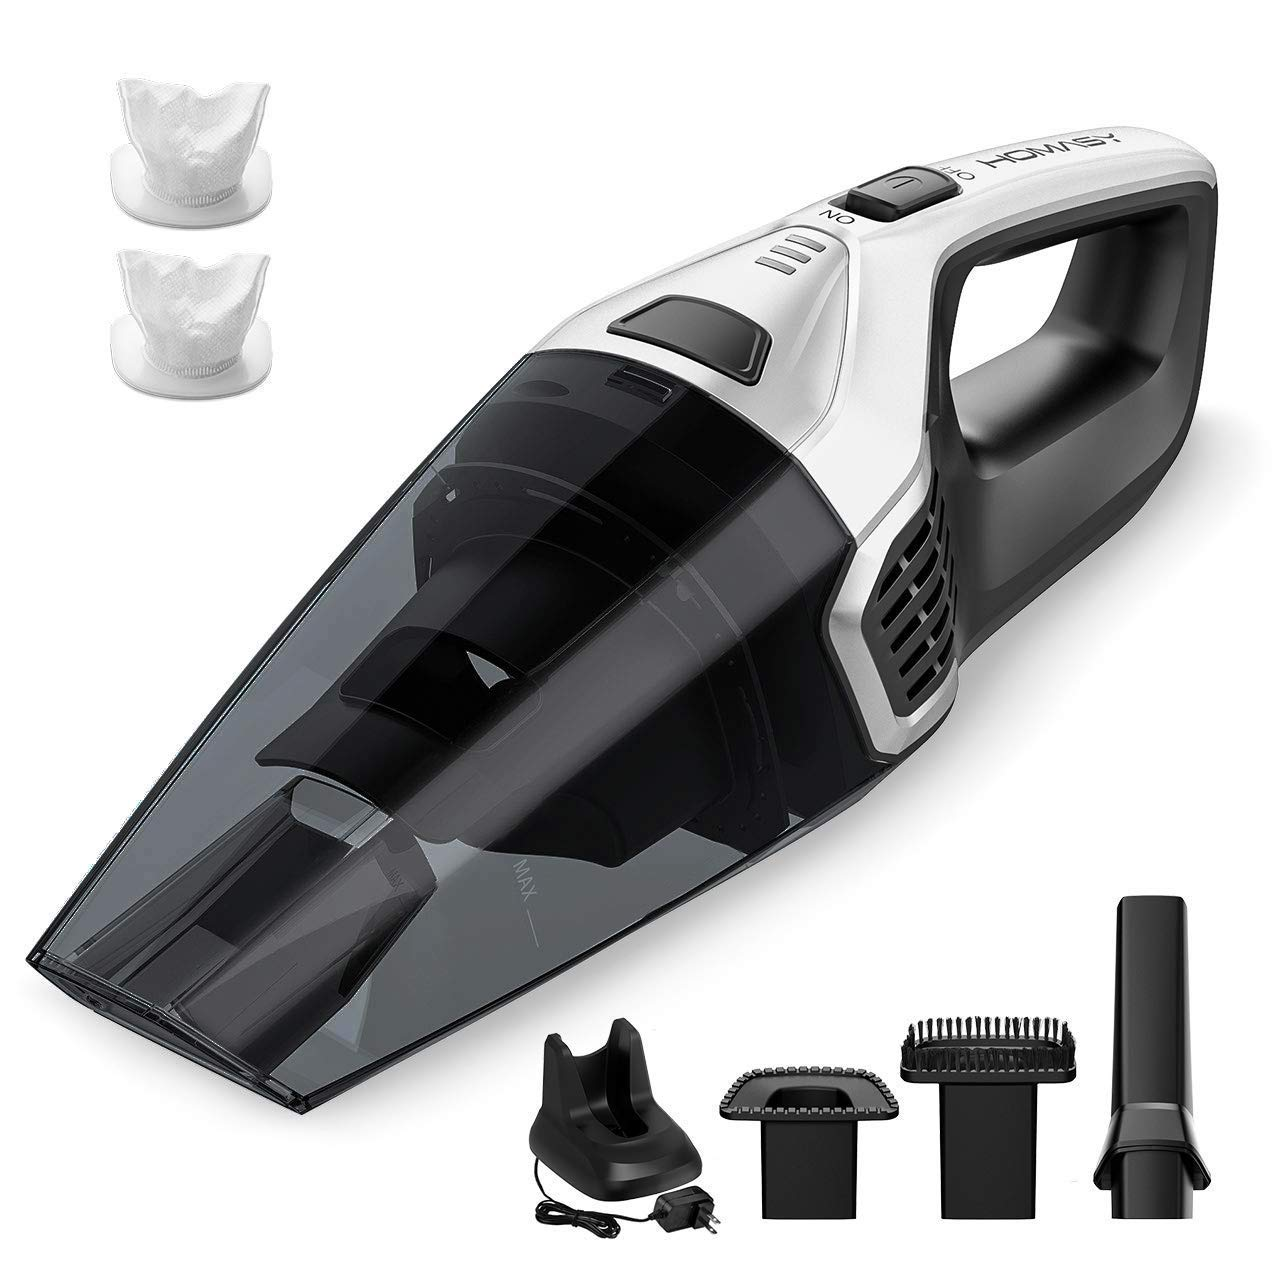 Homasy Upgraded Handheld Vacuum Cleaner Cordless, Powerful Lightweight Cyclonic Suction Cleaner, Rechargeable Quick Charge, Wet Dry Vacuum Cleaner for Pet Hair, Home and Car Cleaning